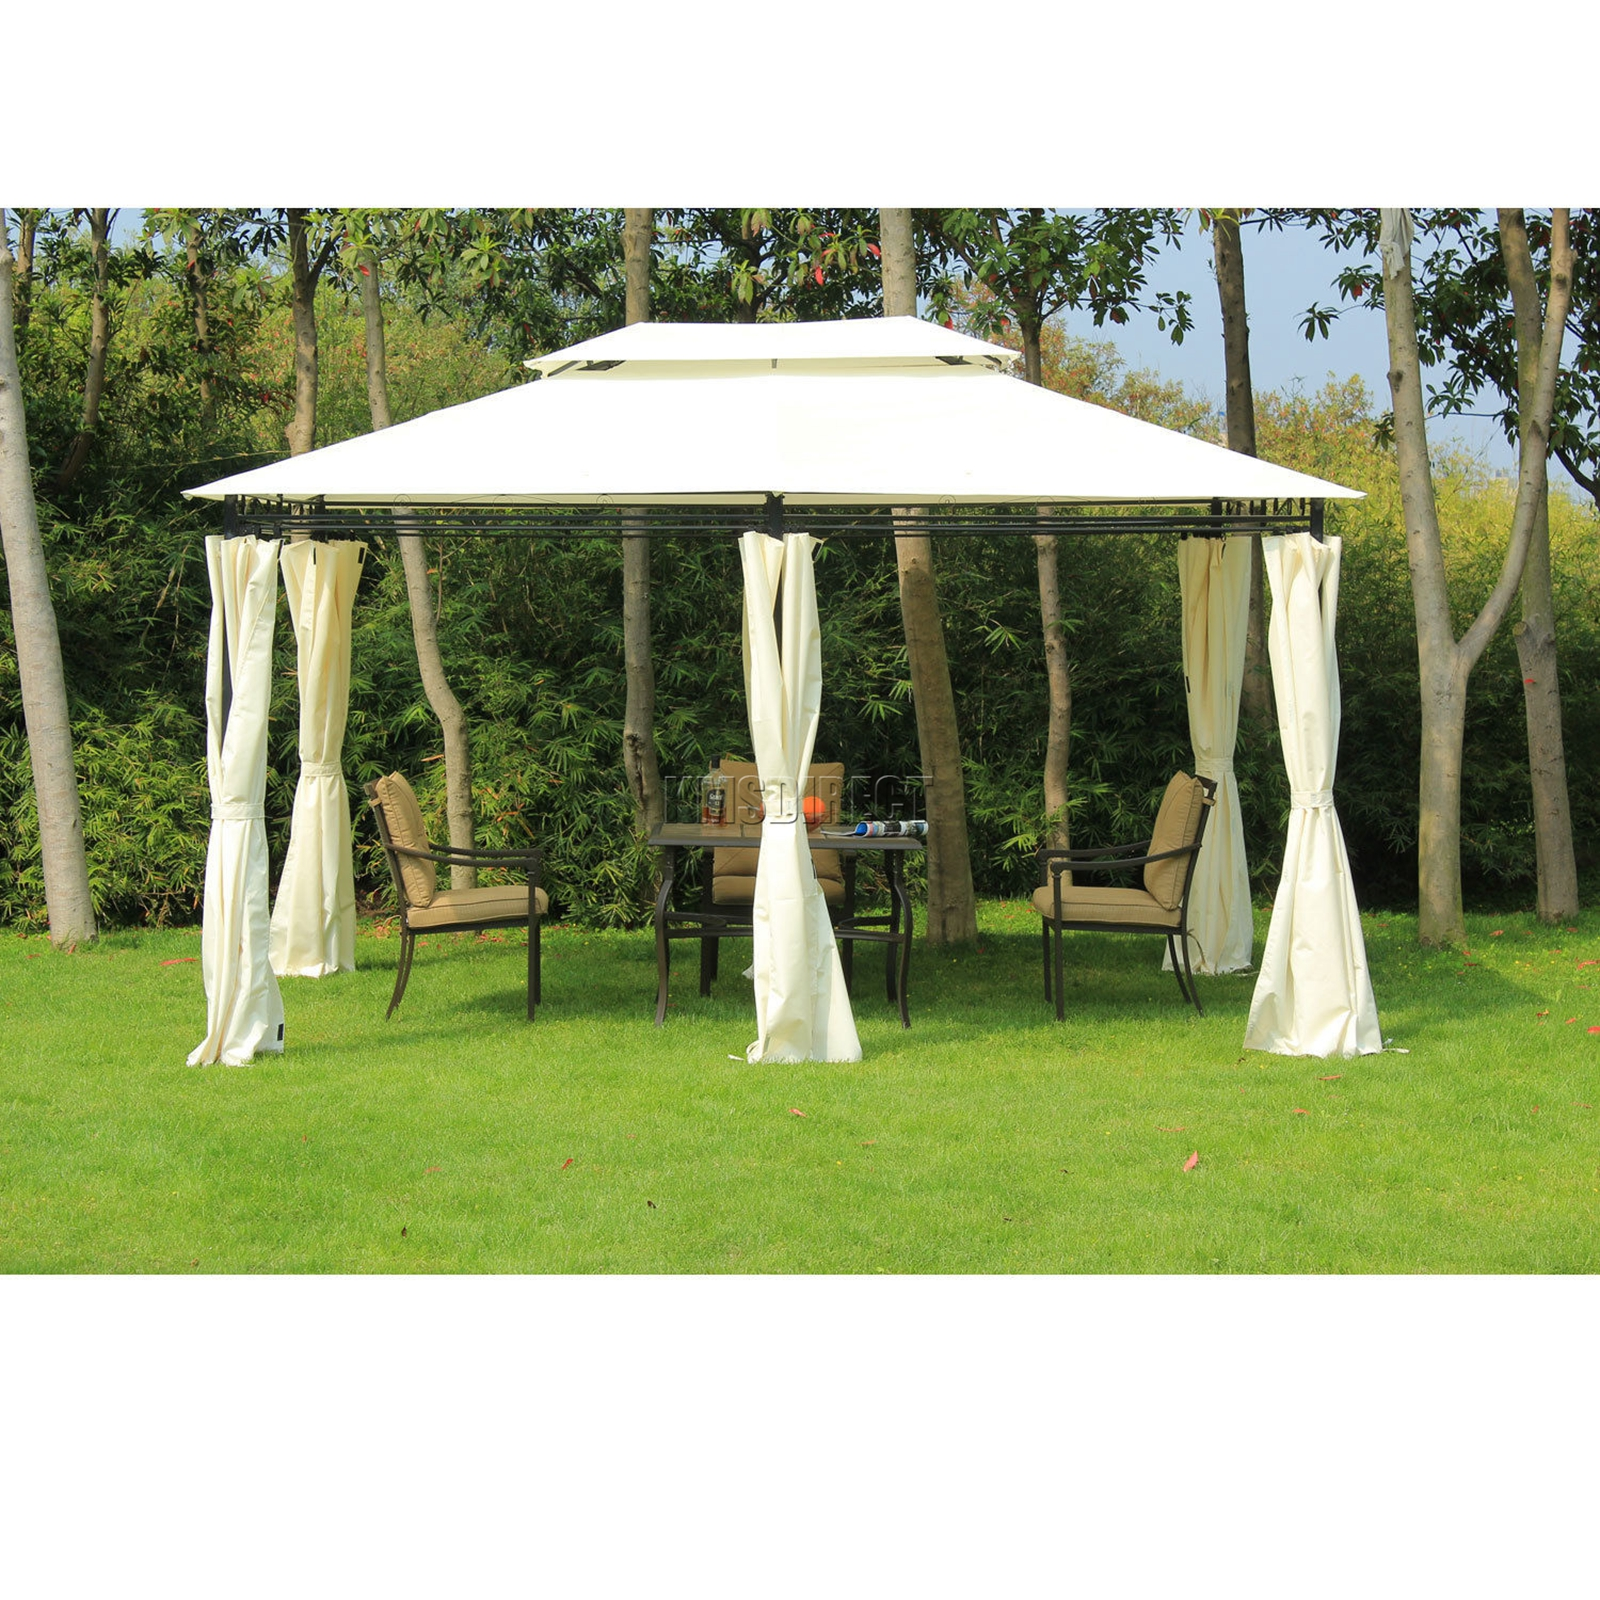 foxhunter garden pavilion gazebo shelter beige party tent. Black Bedroom Furniture Sets. Home Design Ideas